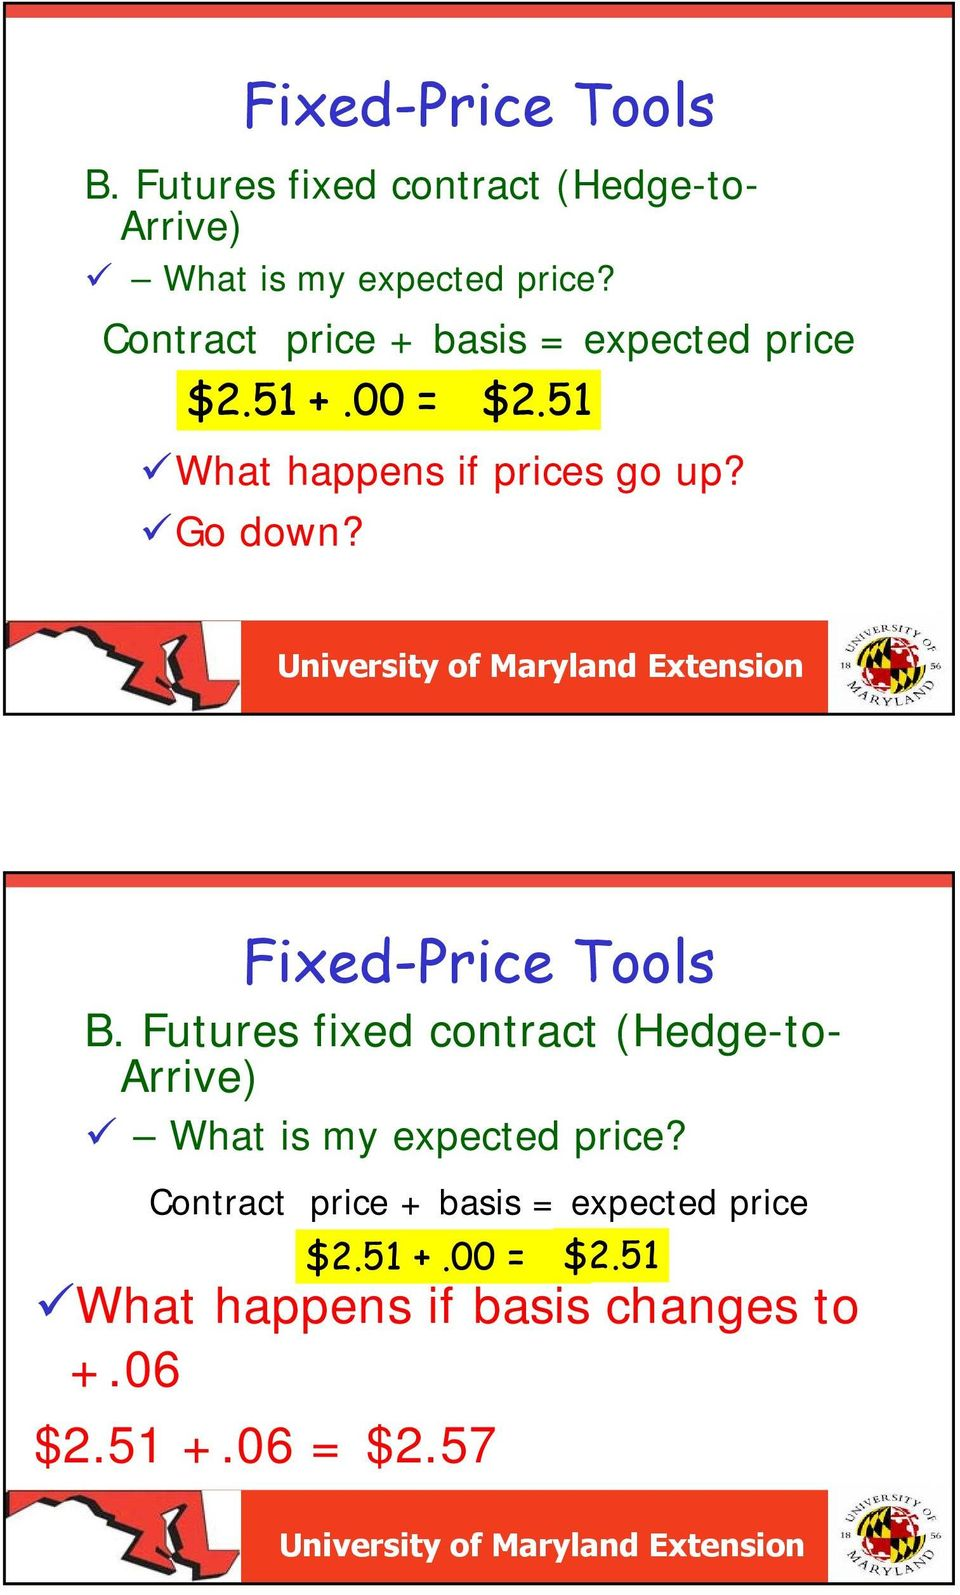 Contract price + basis = expected price $2.51 +.00 = $2.51 What happens if basis changes to +.